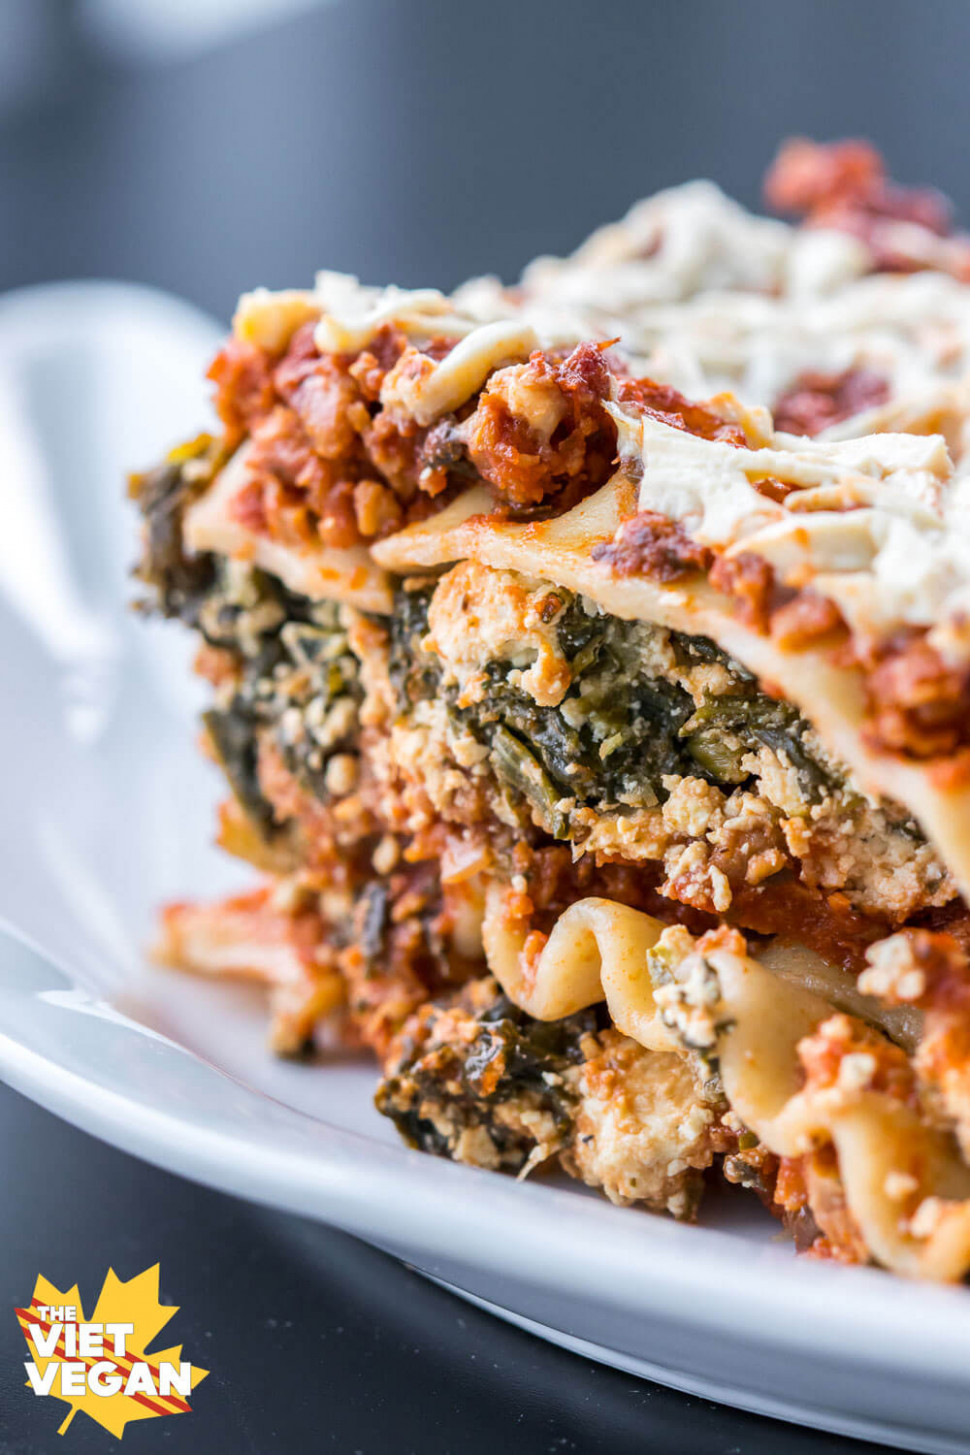 Vegetarian Lasagna With Ricotta Cheese And Spinach - Vegetarian Recipes With Ricotta Cheese